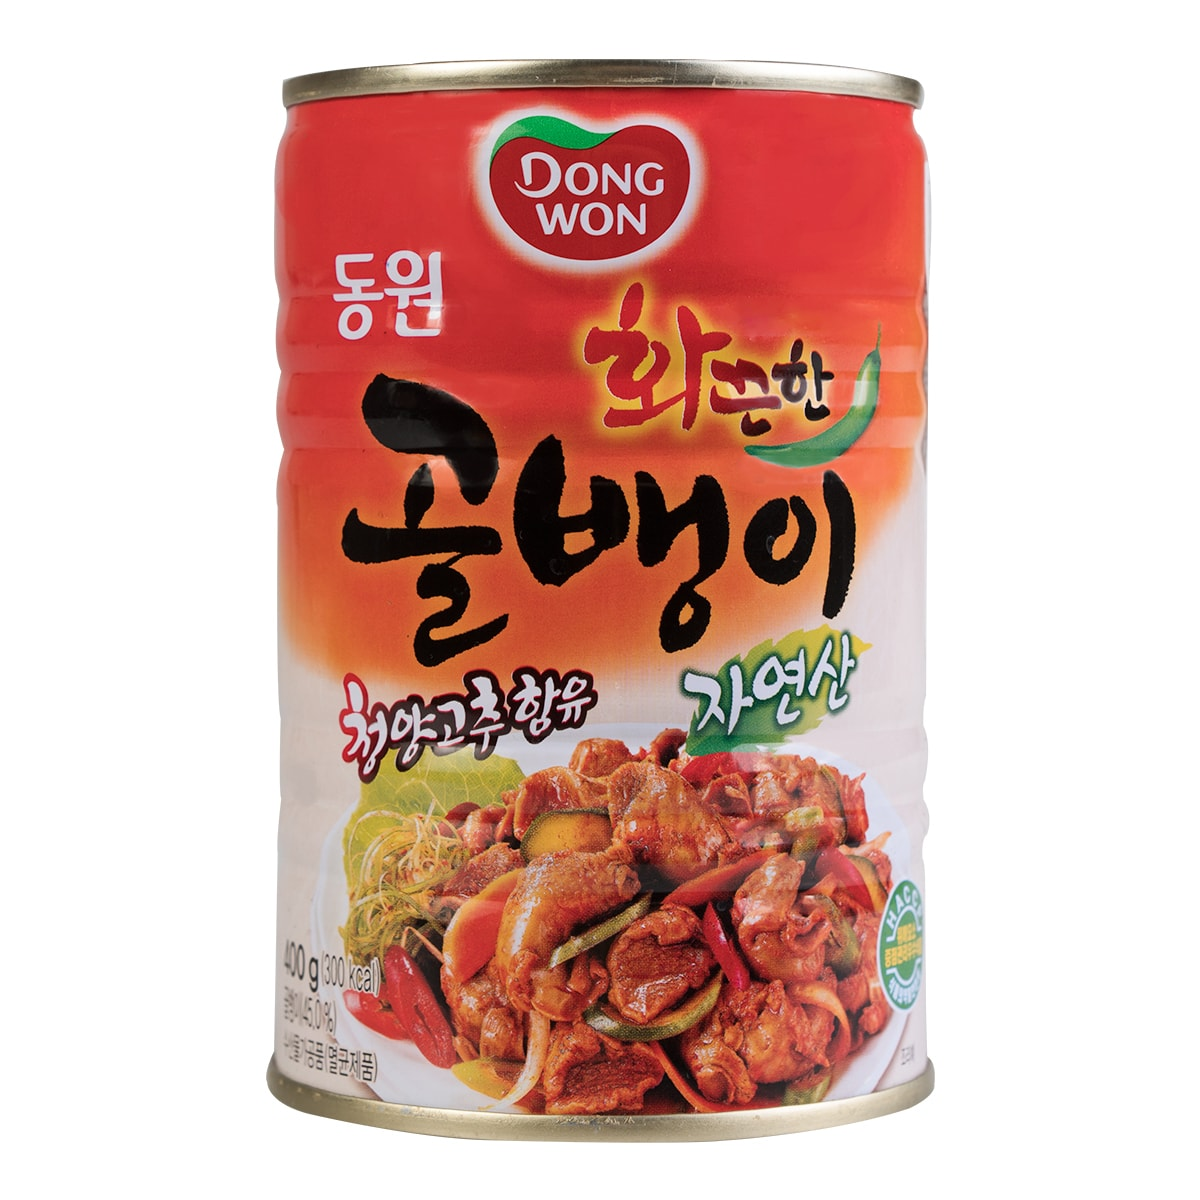 【Clearance】Dong Won Canned Bai-Top Shell Hot Flavor 400g